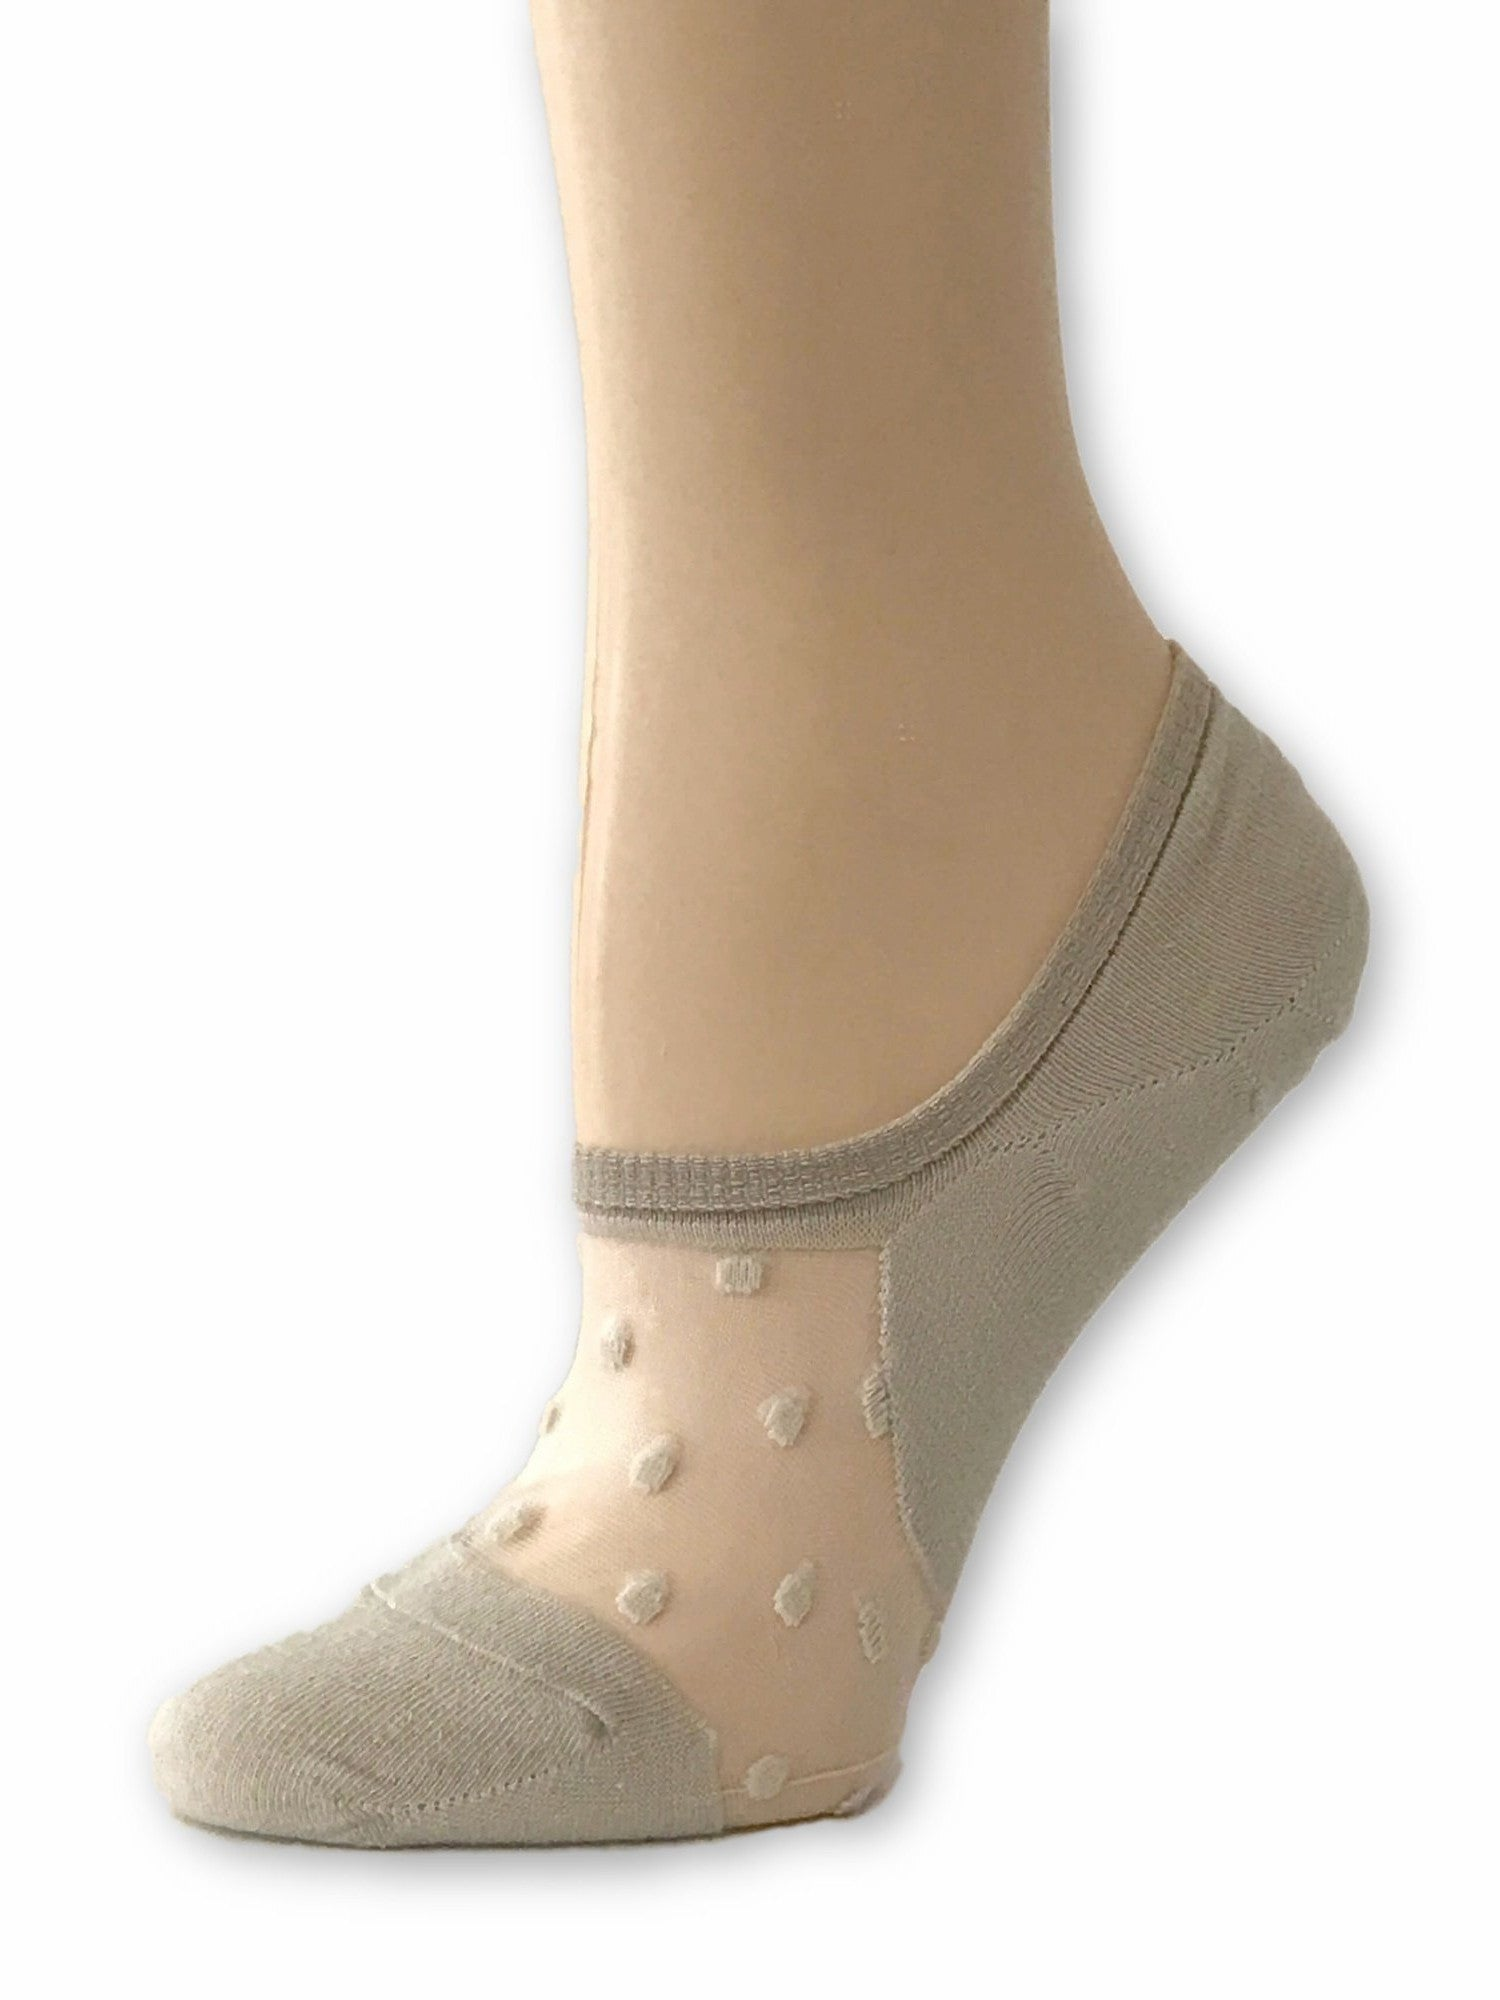 Elegant Skin Dotted Ankle Sheer Socks - Global Trendz Fashion®